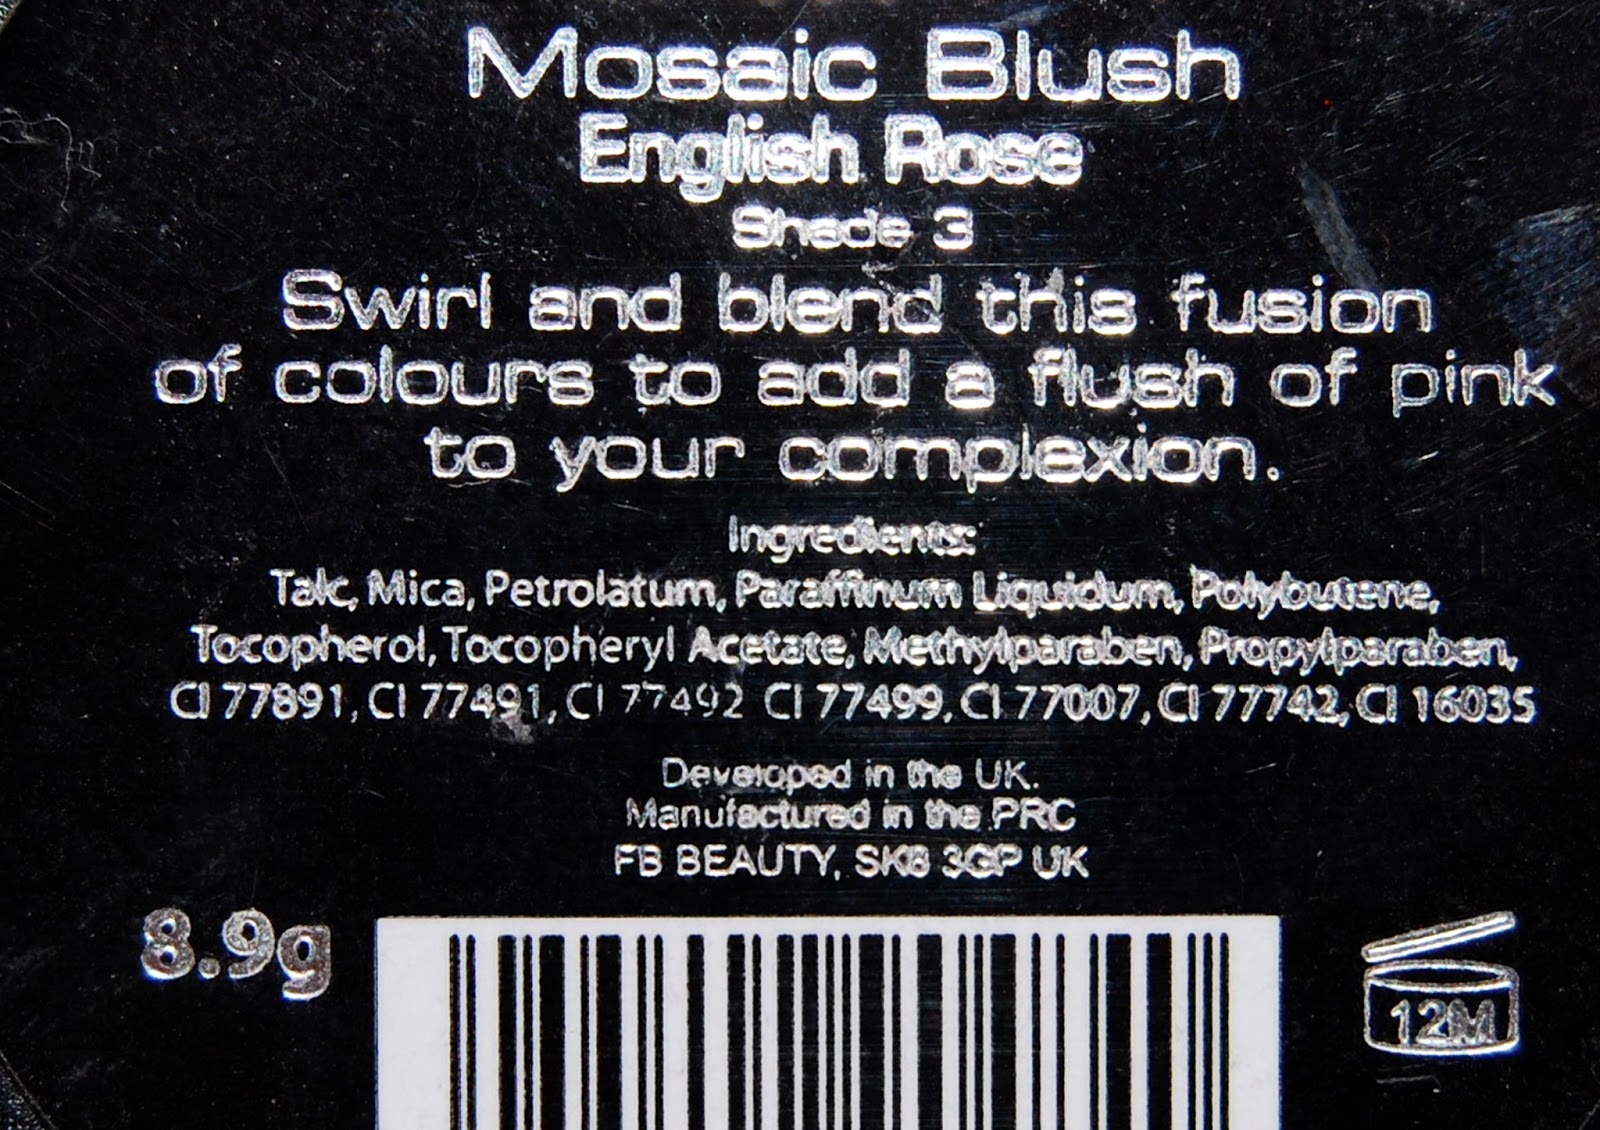 MUA Mosaic Blush English Rose, Shade 3 ingredients